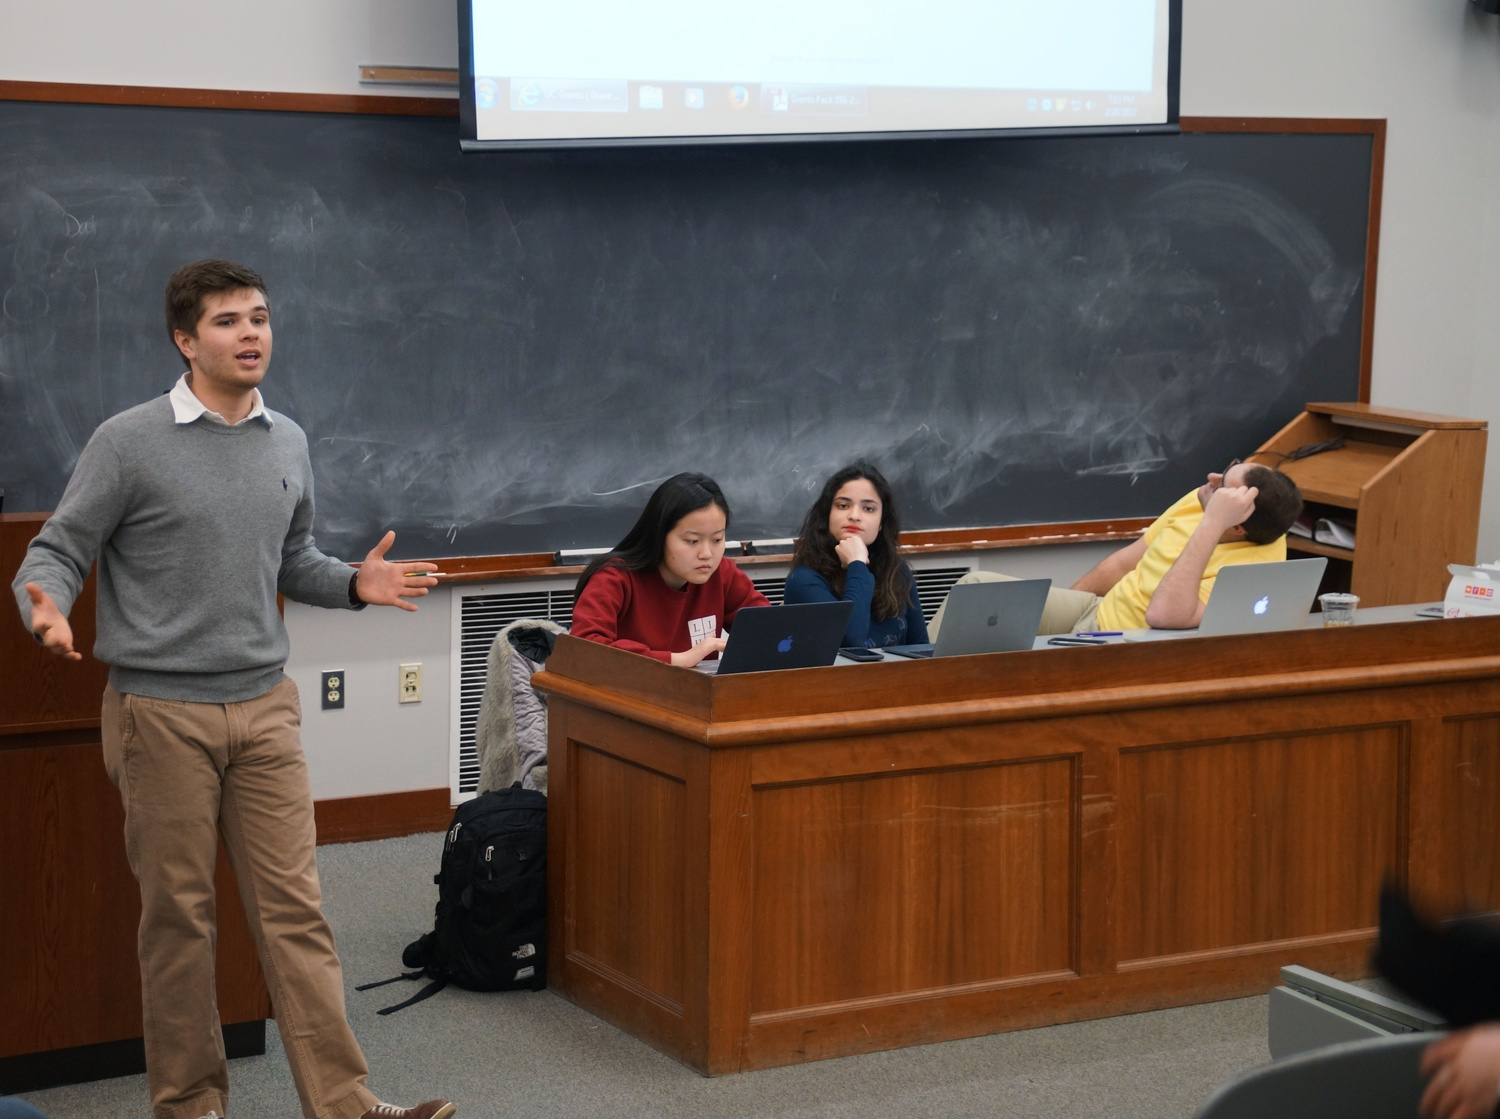 Undergraduate Council Treasurer Nicholas D. Boucher '19 presents a new method of grant approval that allows clubs to visualize the timeline.